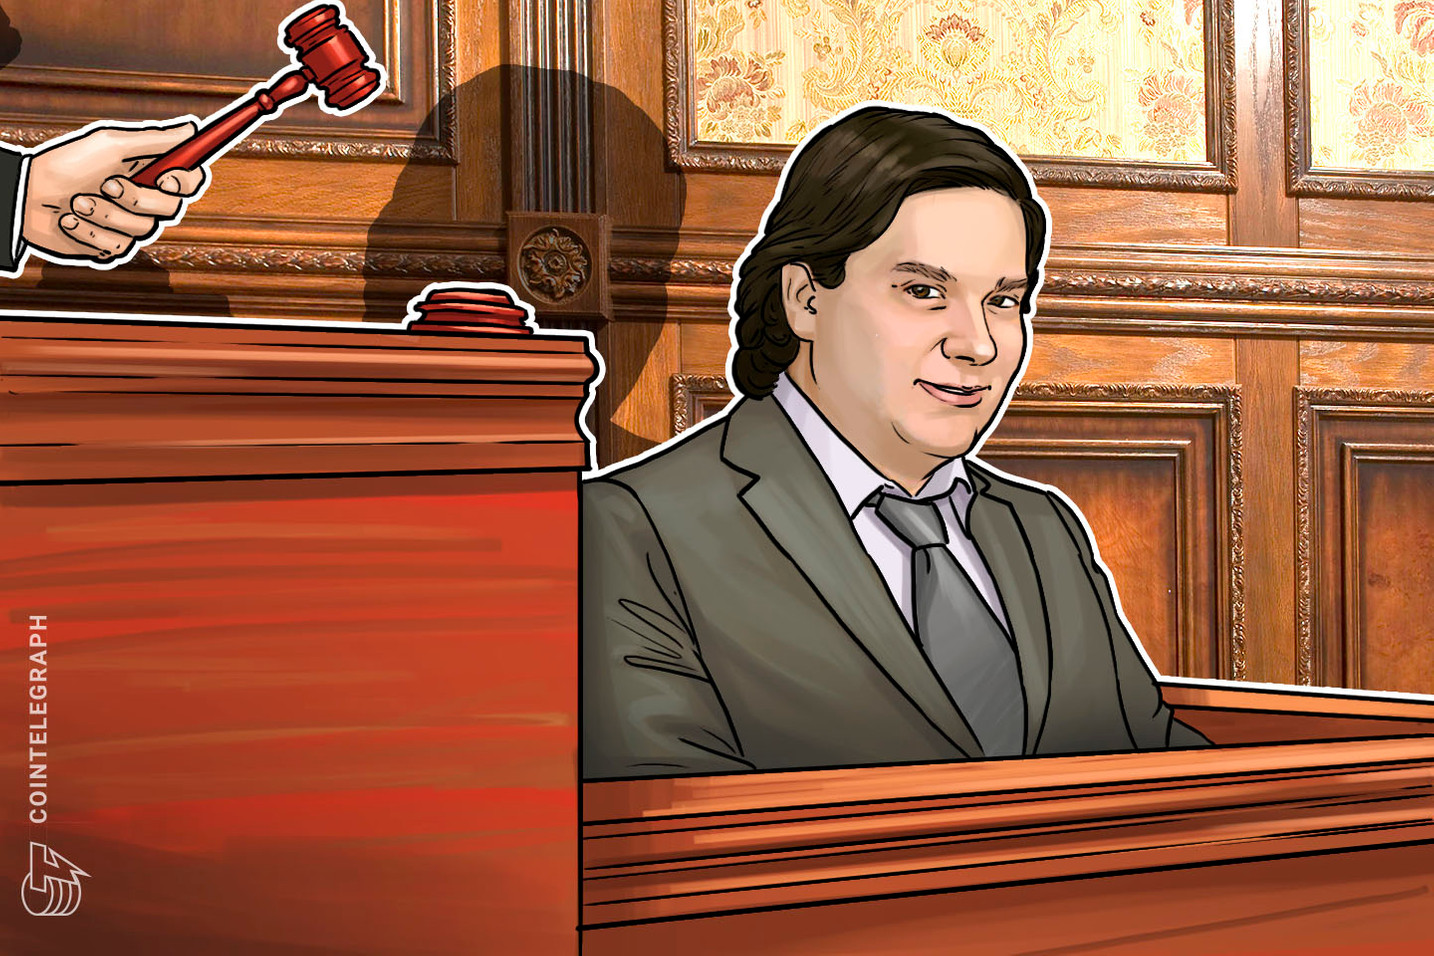 Japanese Court Finds Ex-Mt. Gox CEO Guilty of Record Tampering